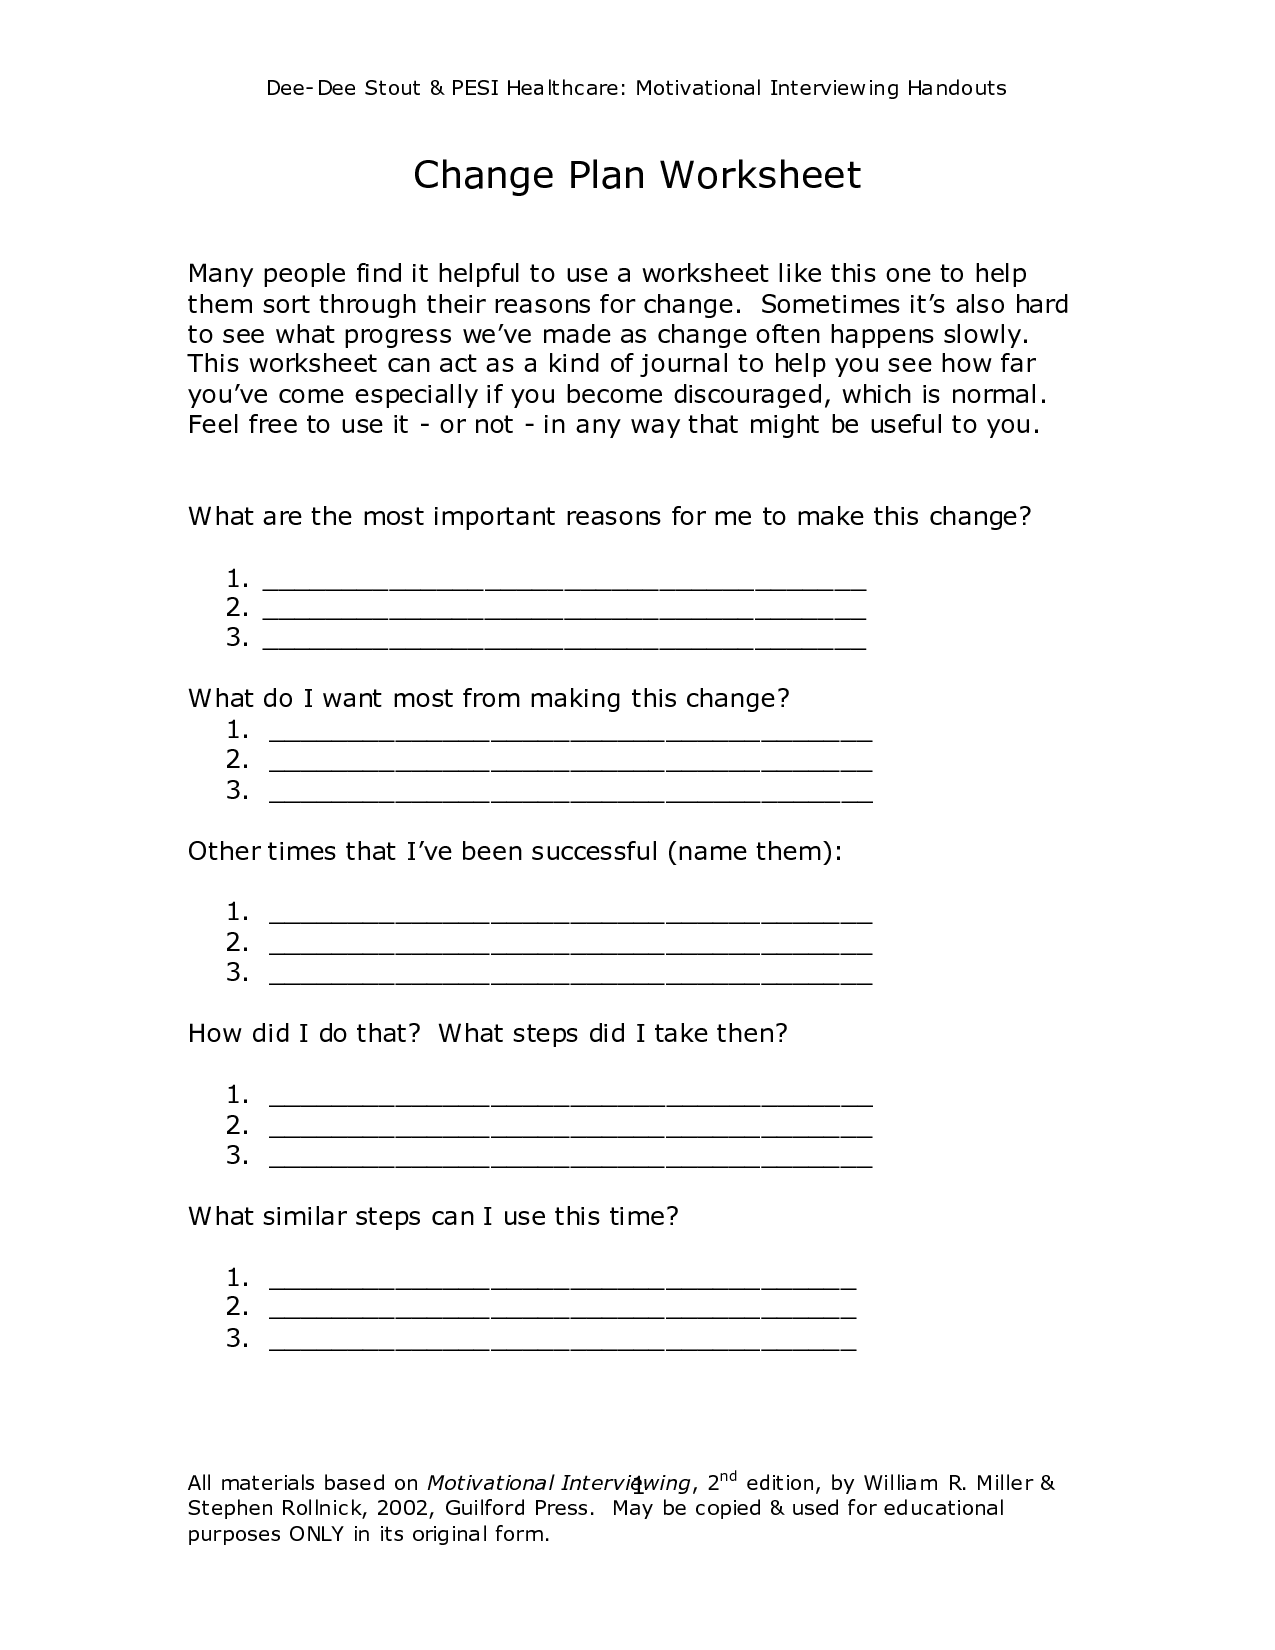 worksheeto postpic 2012 02 motivationalinterviewing – Change Plan Worksheet